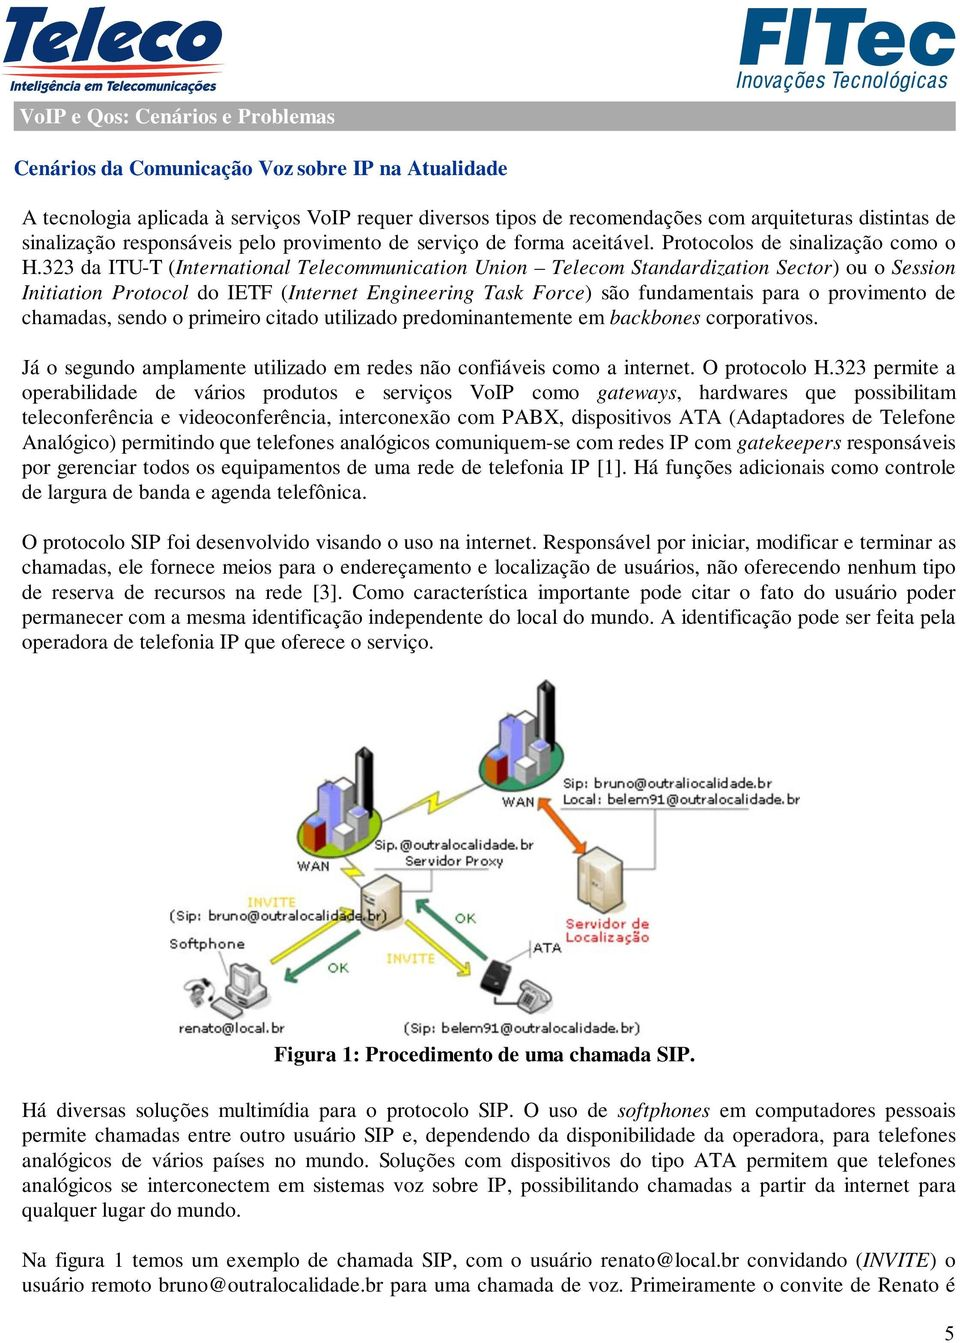 323 da ITU-T (International Telecommunication Union Telecom Standardization Sector) ou o Session Initiation Protocol do IETF (Internet Engineering Task Force) são fundamentais para o provimento de